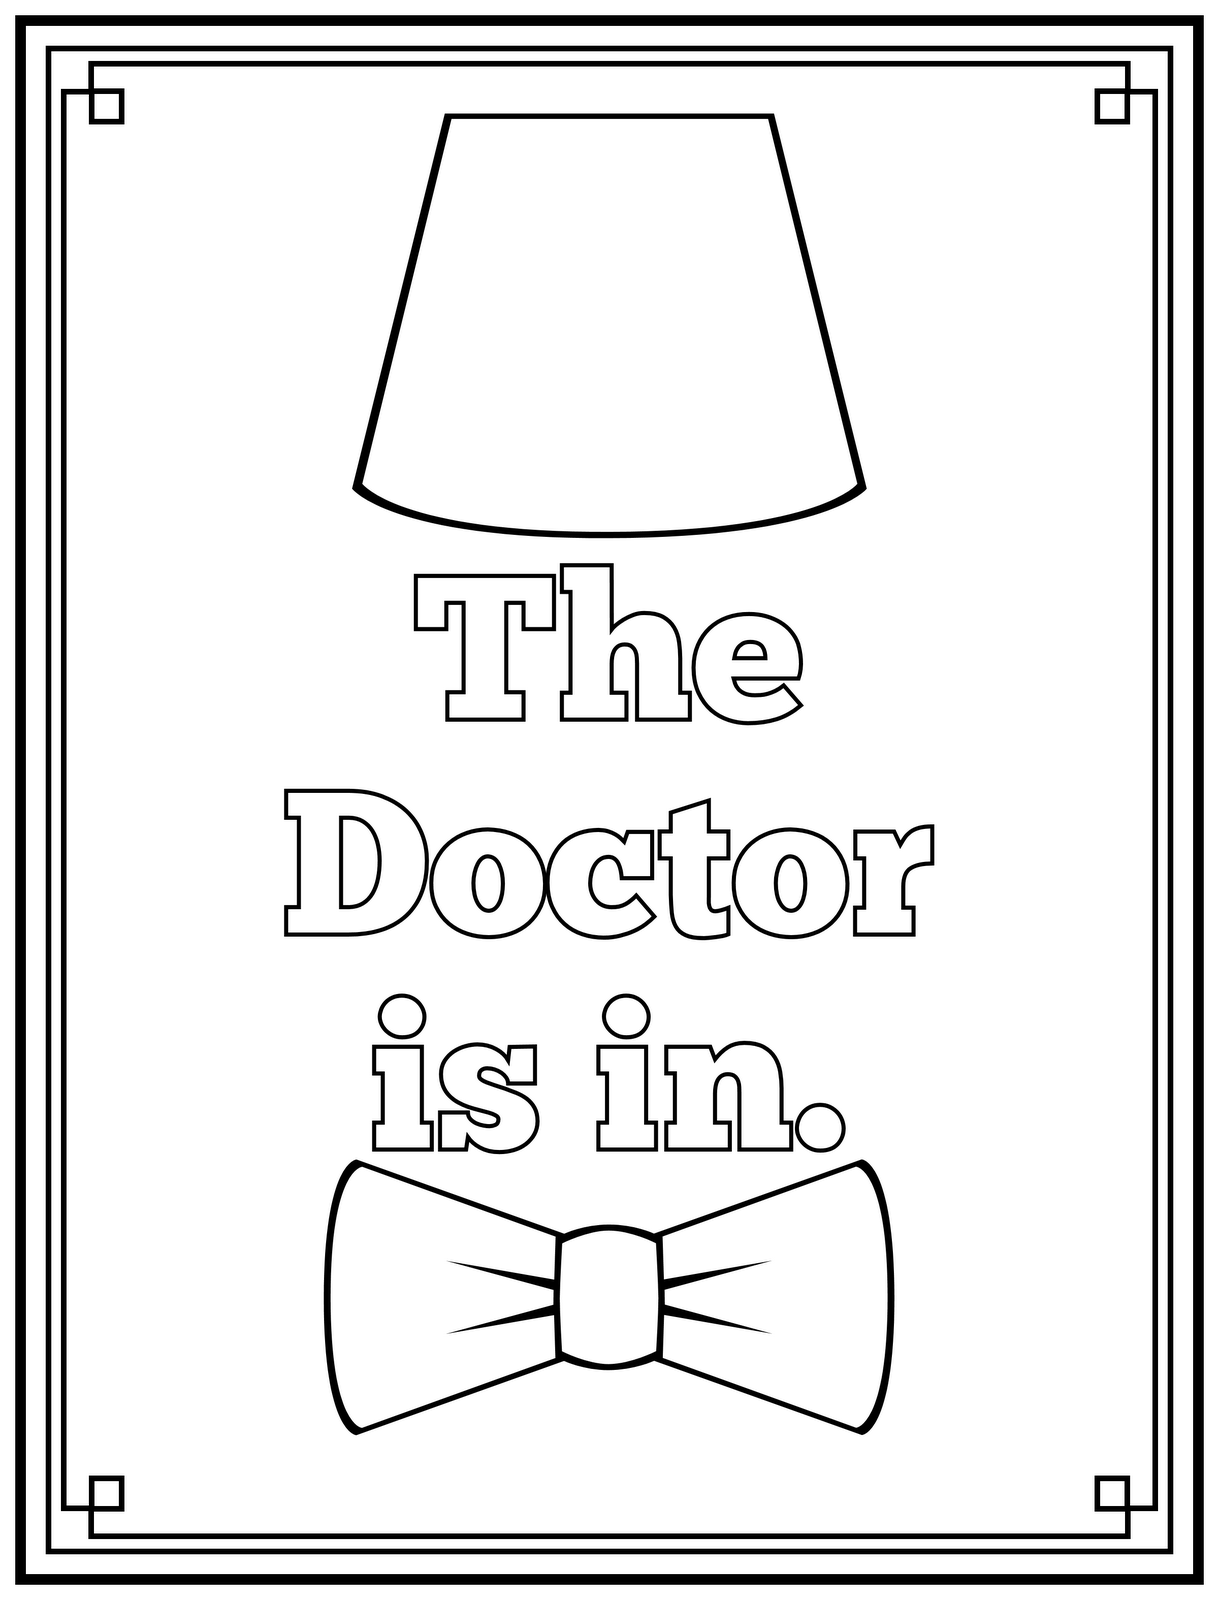 free doctor coloring pages - photo#23